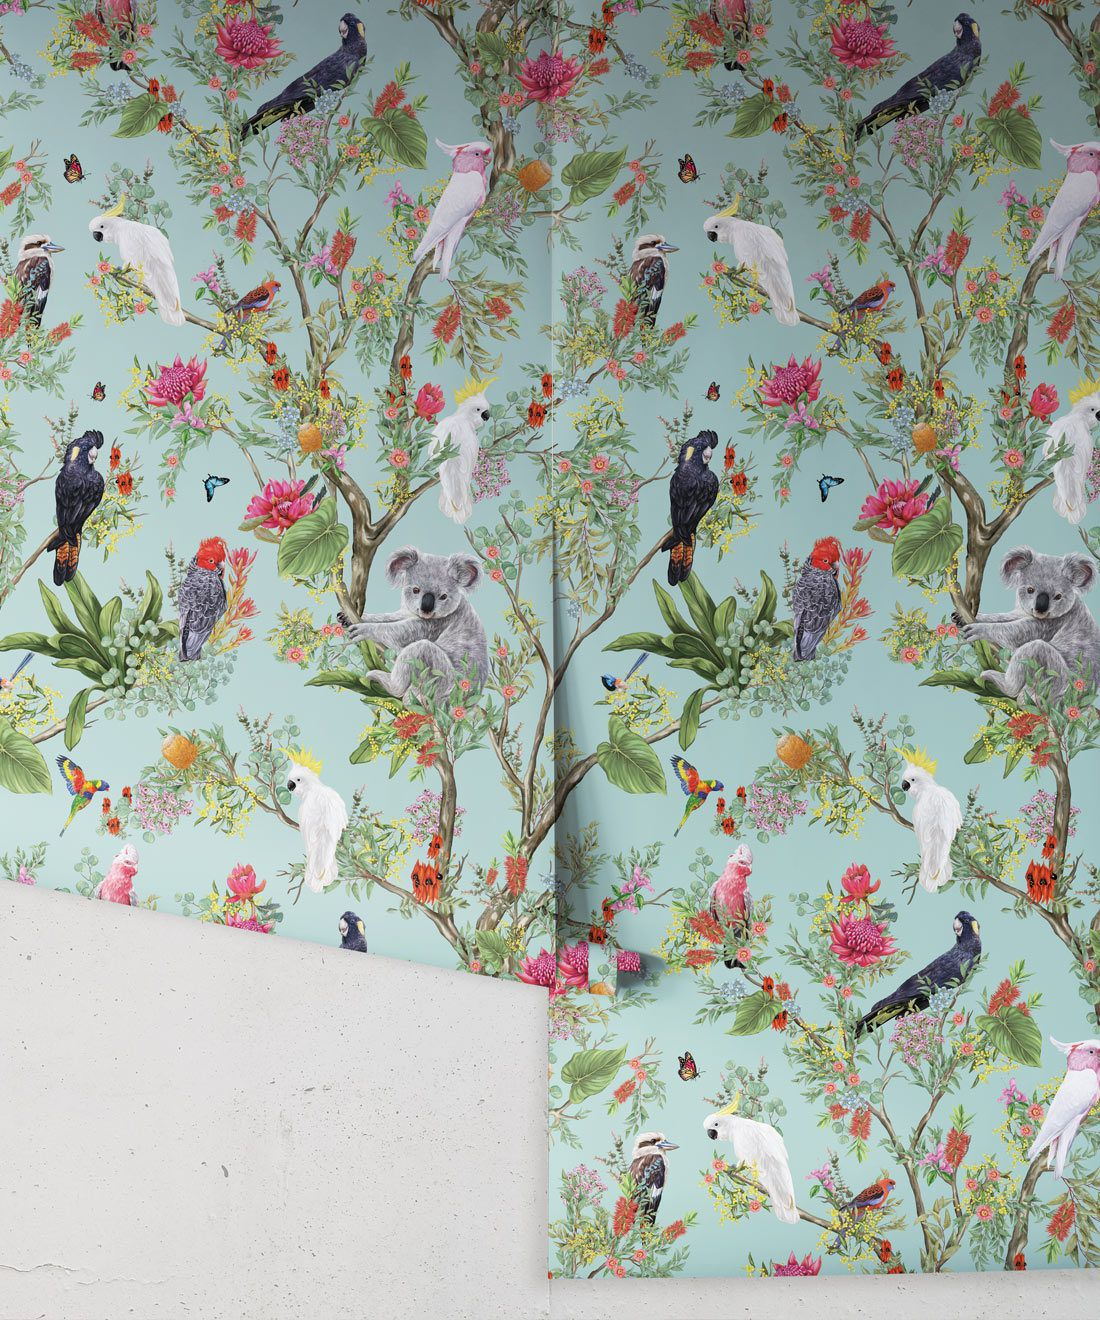 Australia Wallpaper • Cockatoos, Koalas, Parrots, Finches • Milton & King USA • Mint Green Wallpaper Roll